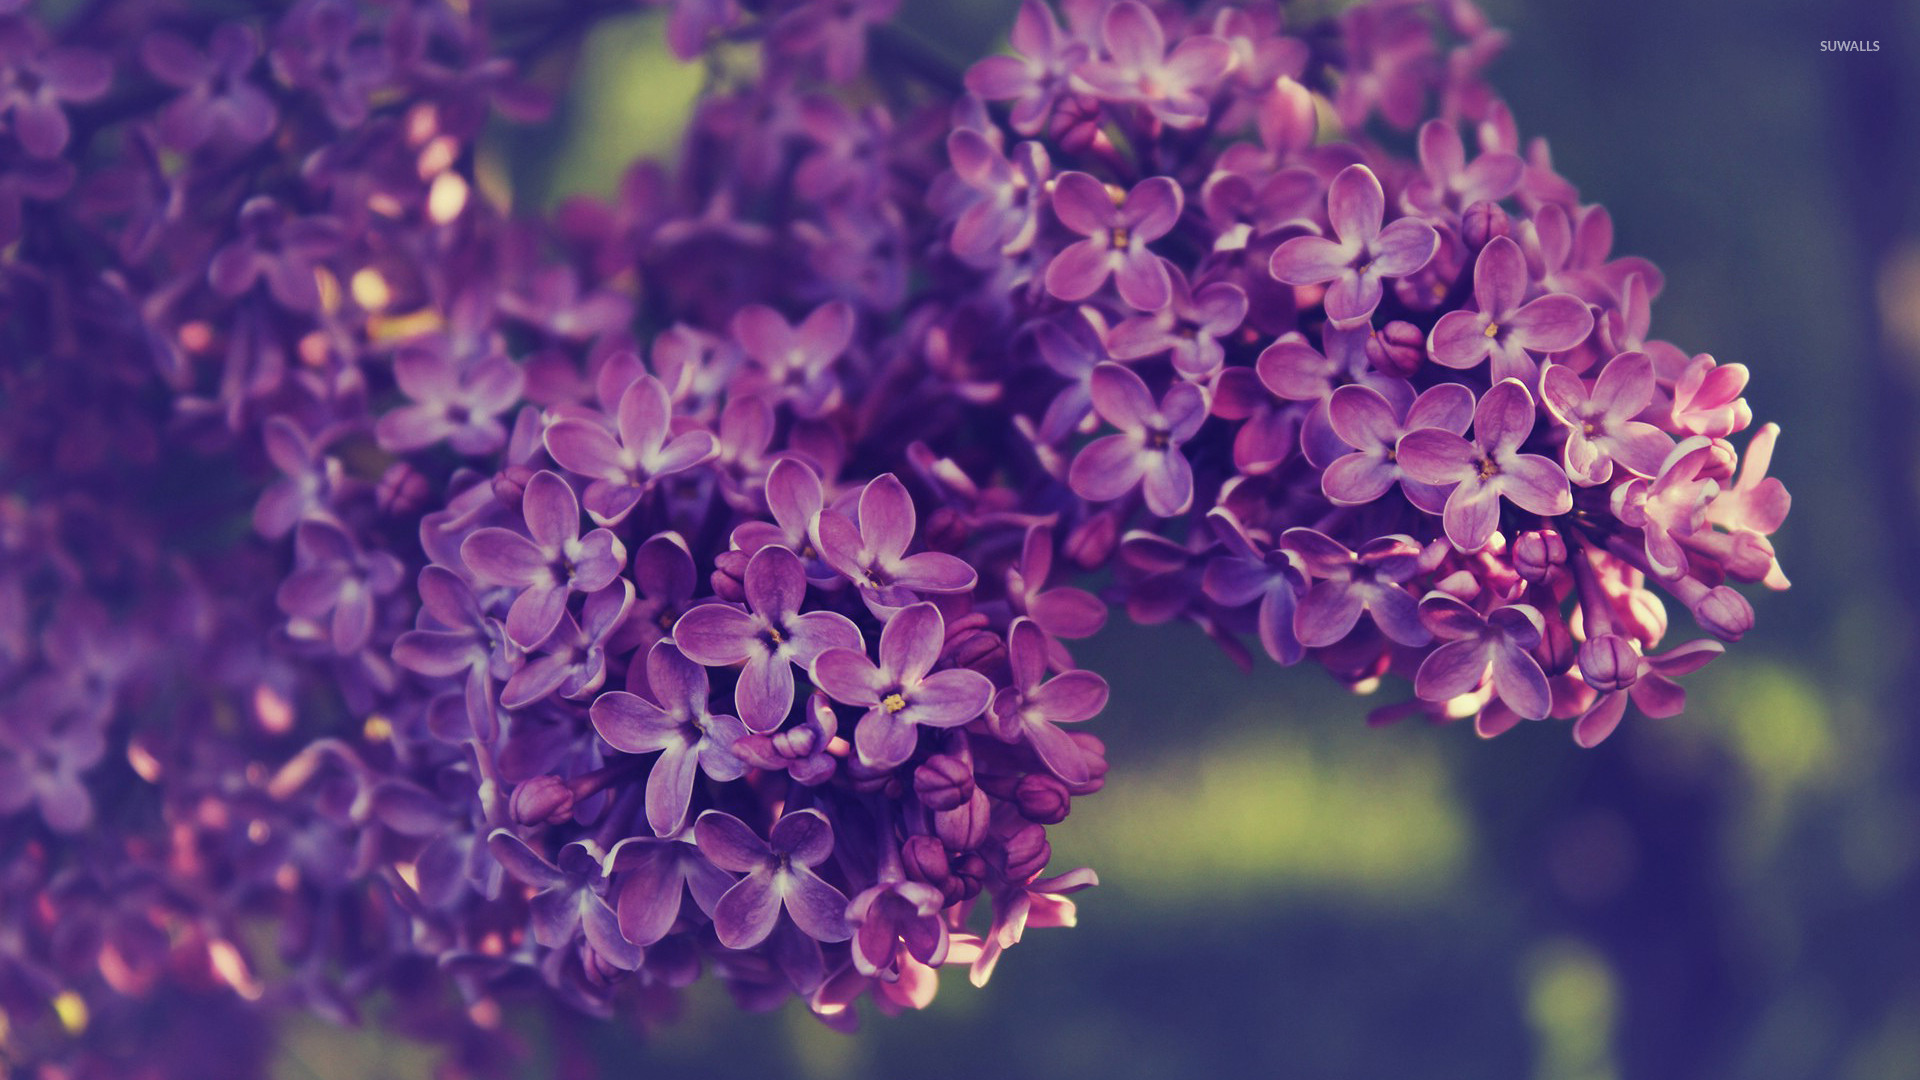 Lilac Background Wallpaper - WallpaperSafari